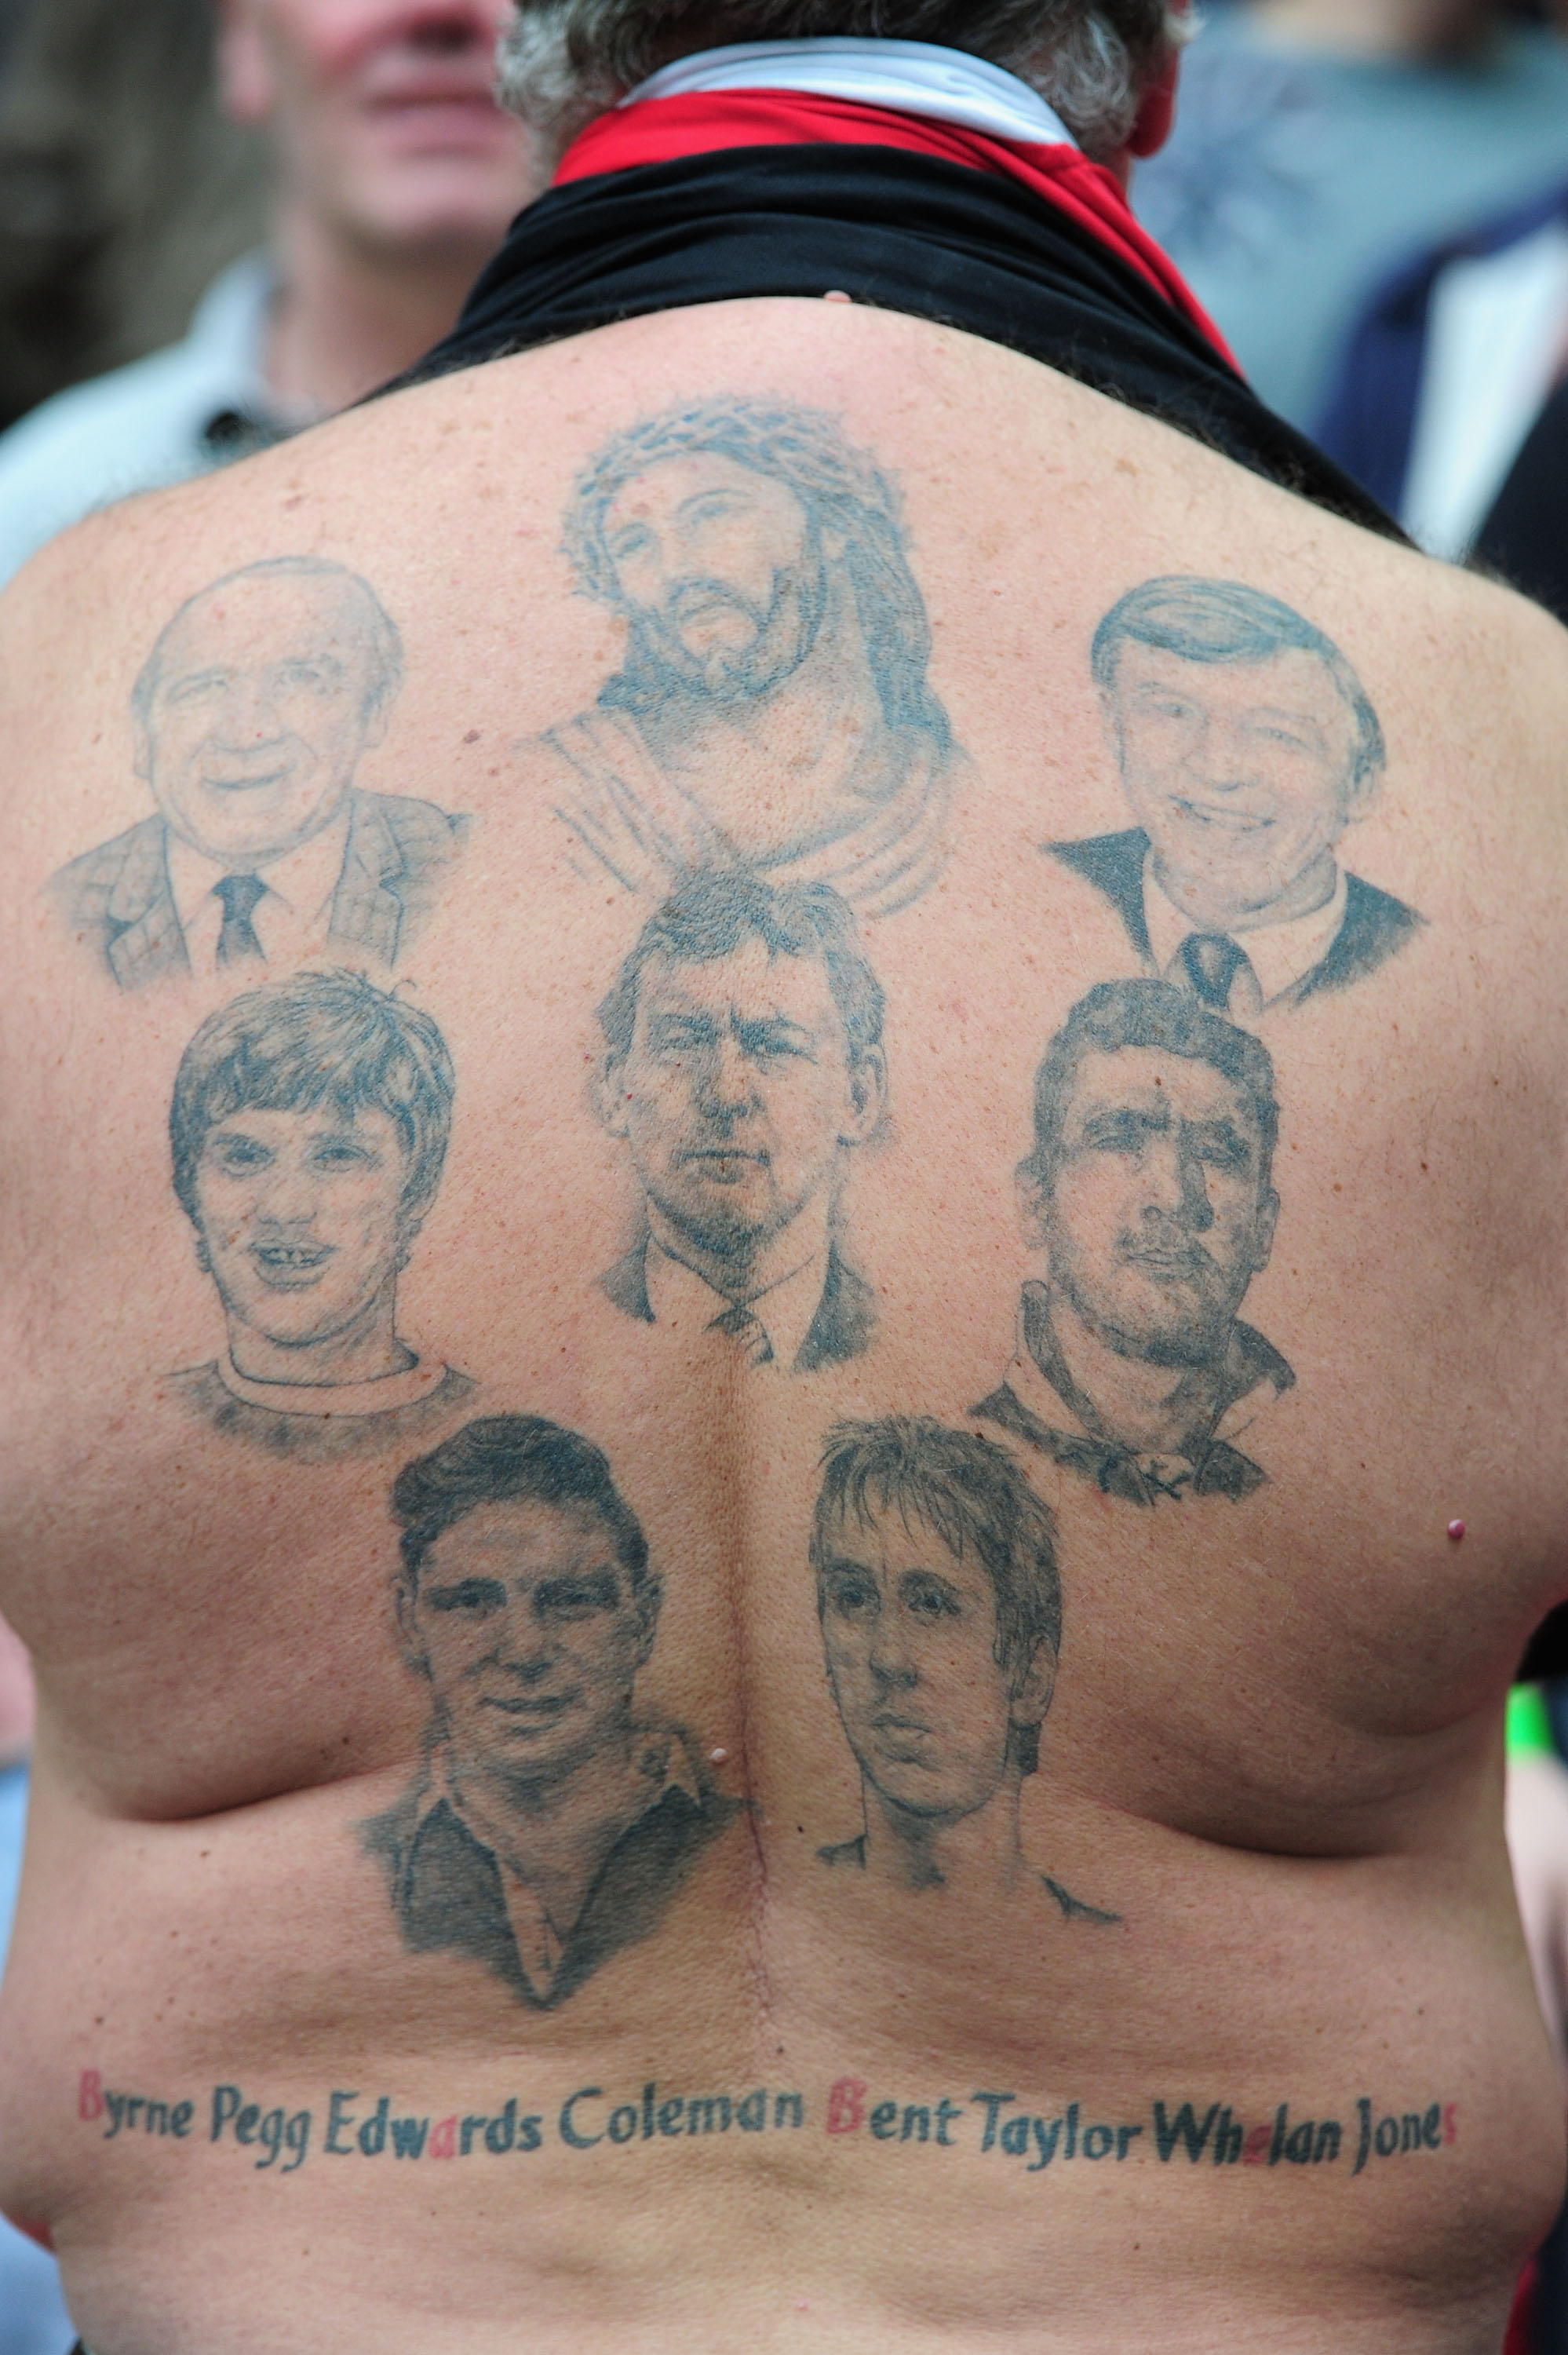 19 amazingly bad football tattoos that just shouldn't ...